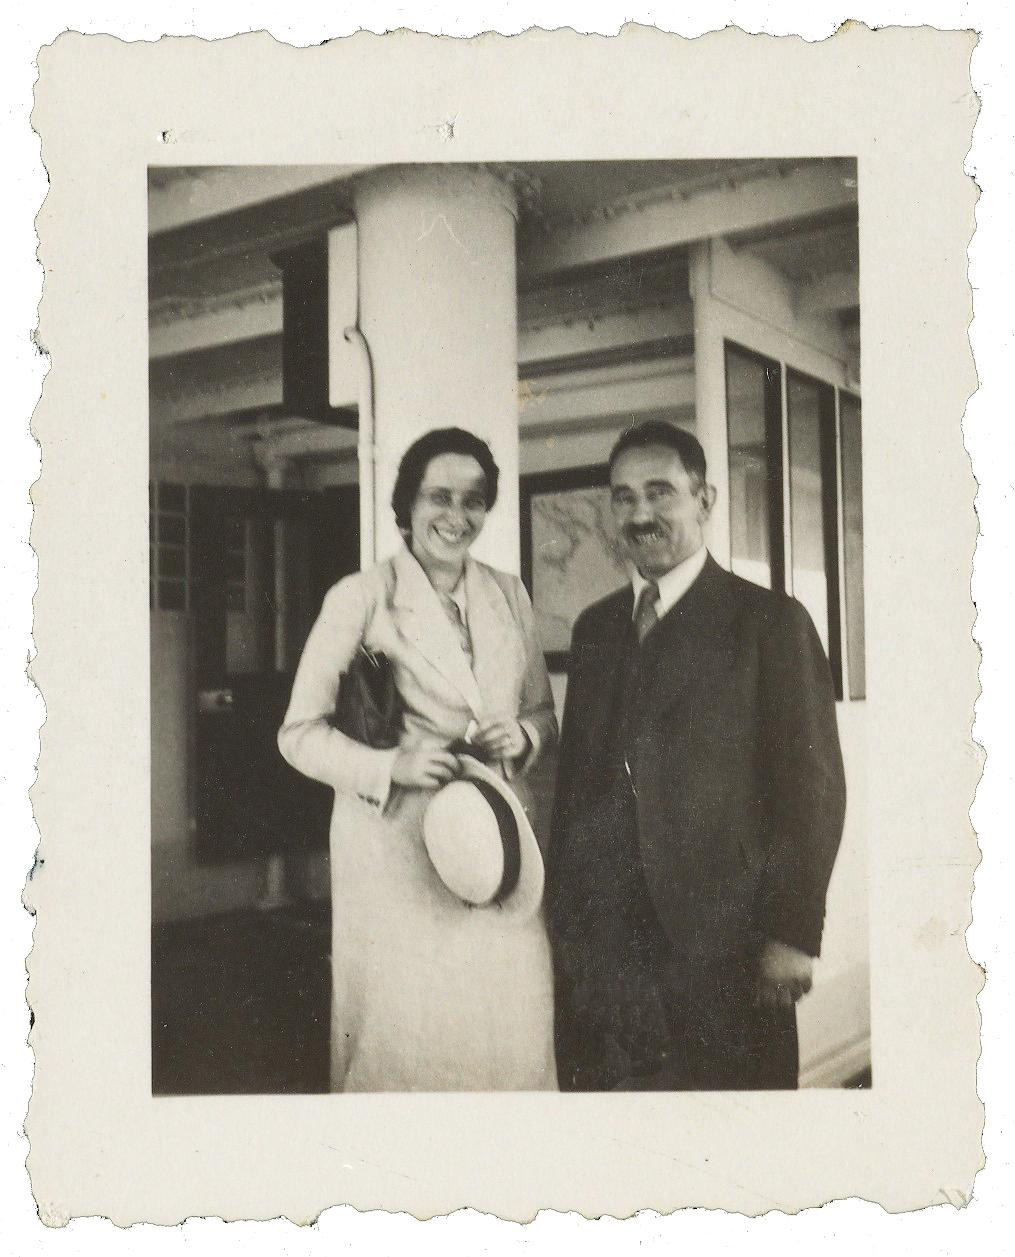 Arendt, smiling and wearing a long white coat, holding a hat, stands next to a moustached man in a dark suit